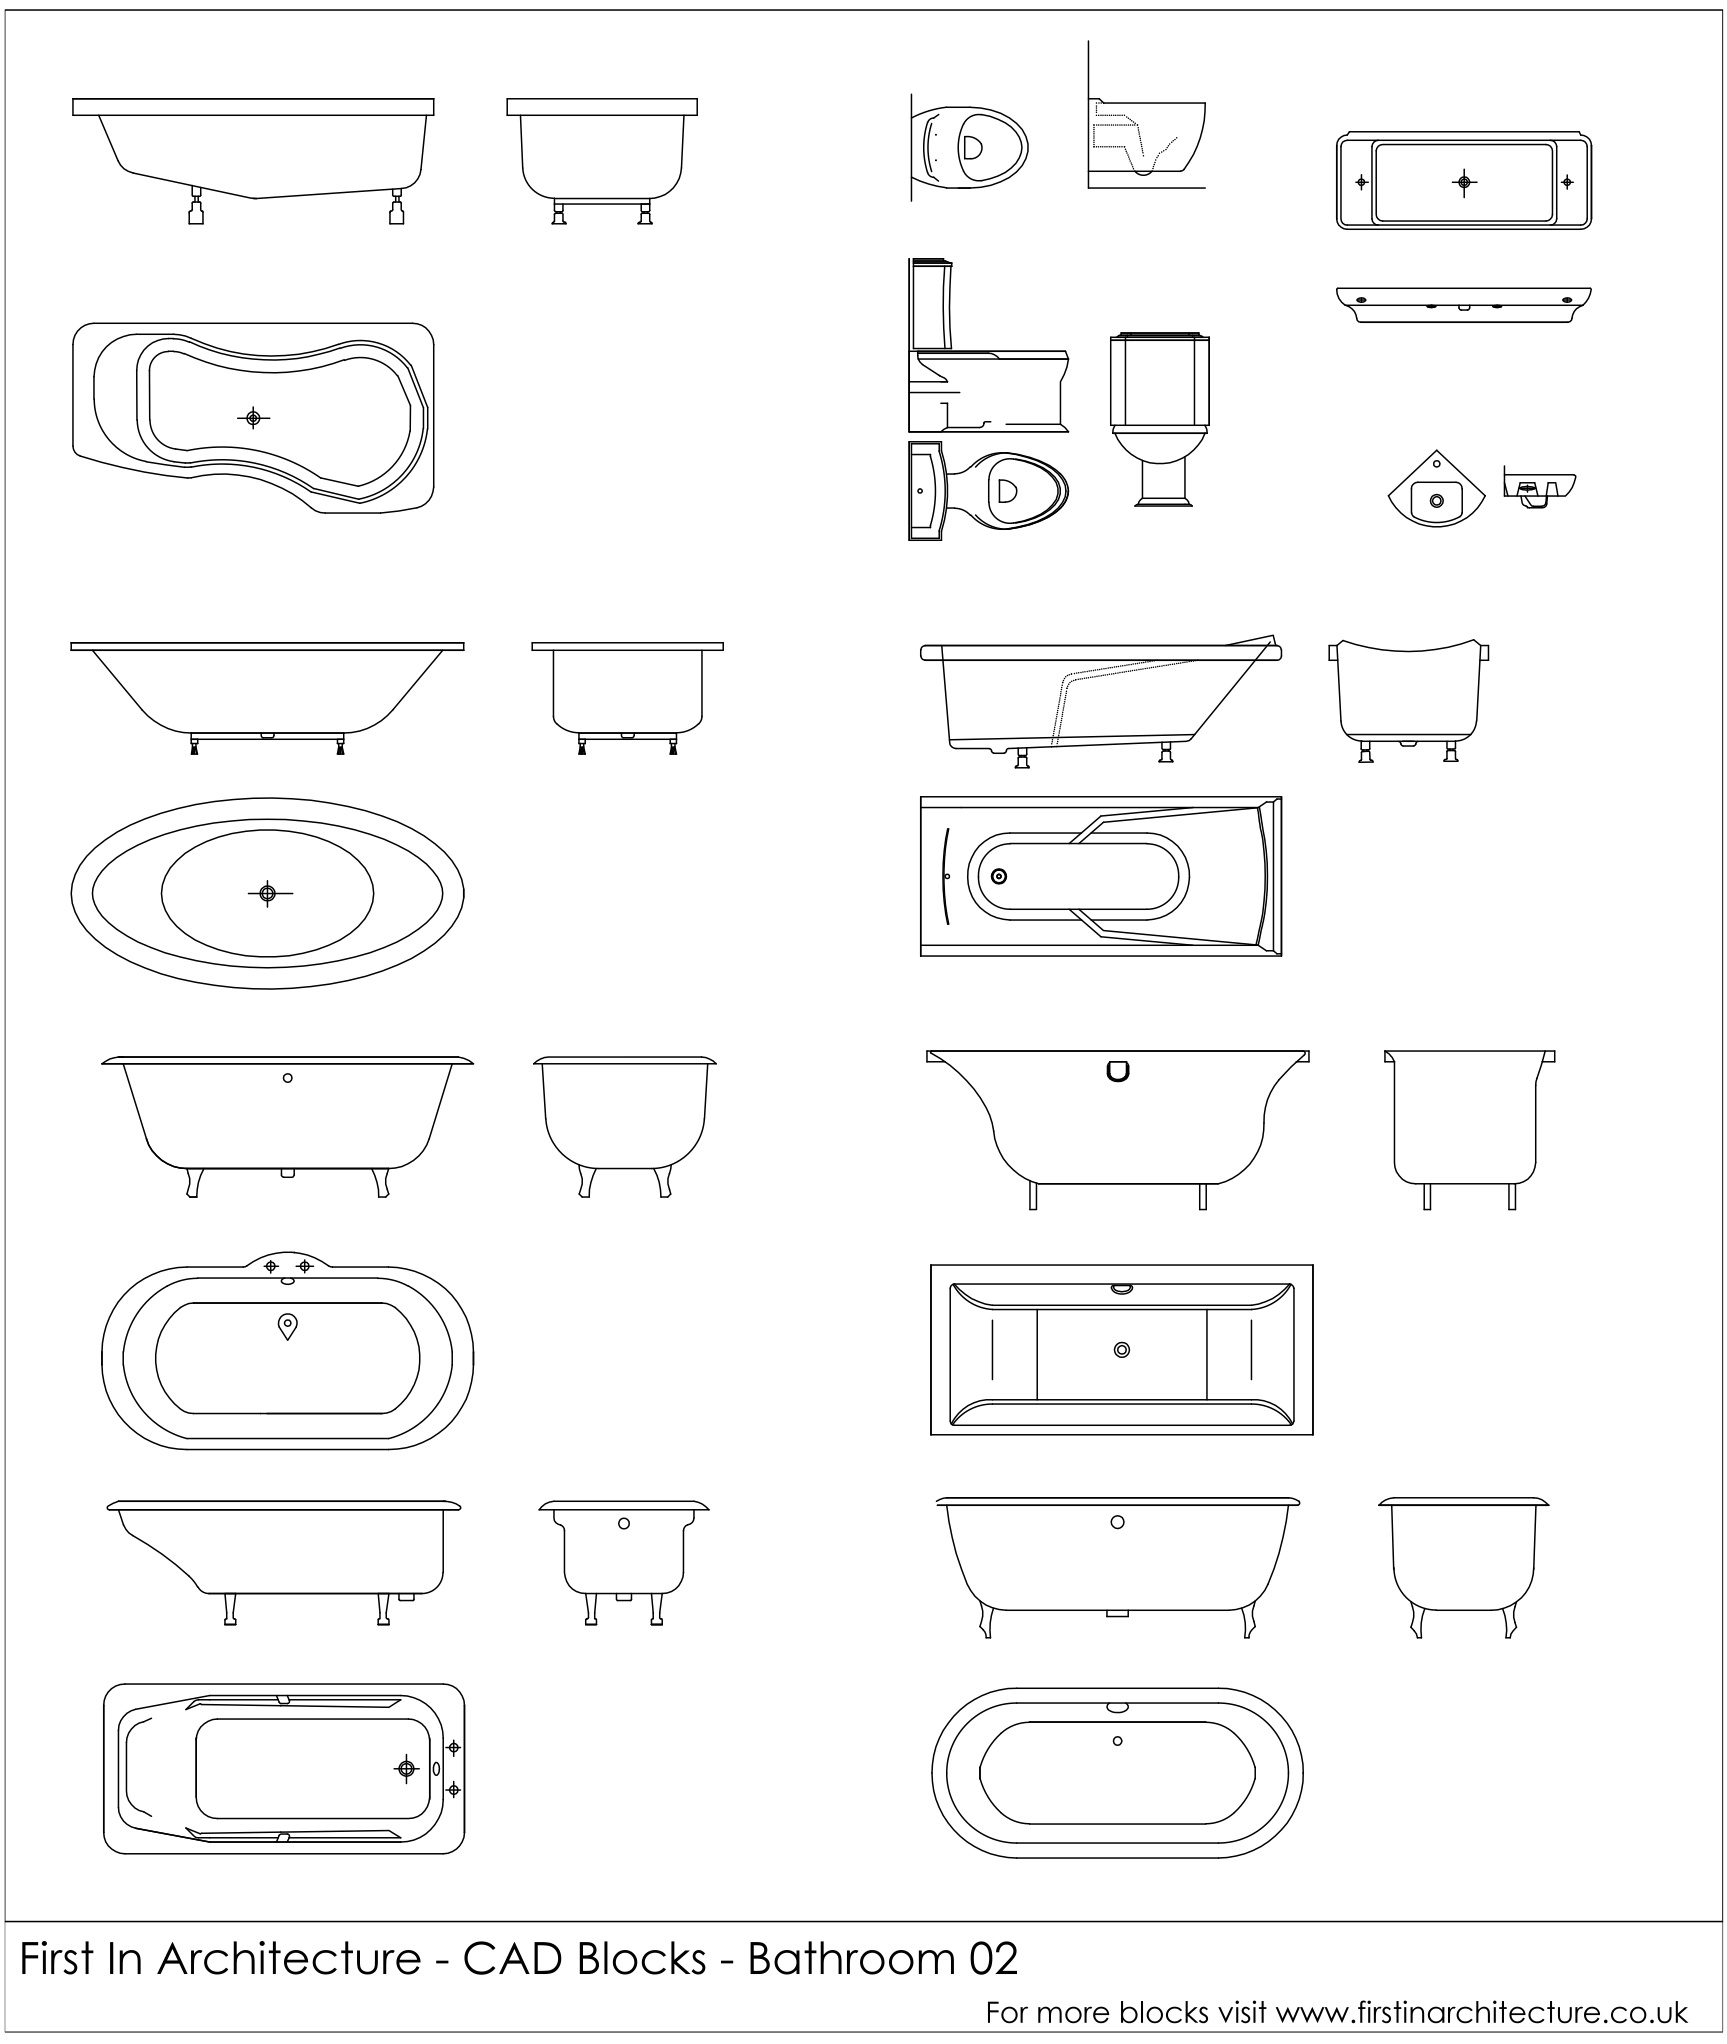 free cad blocks - bathroom